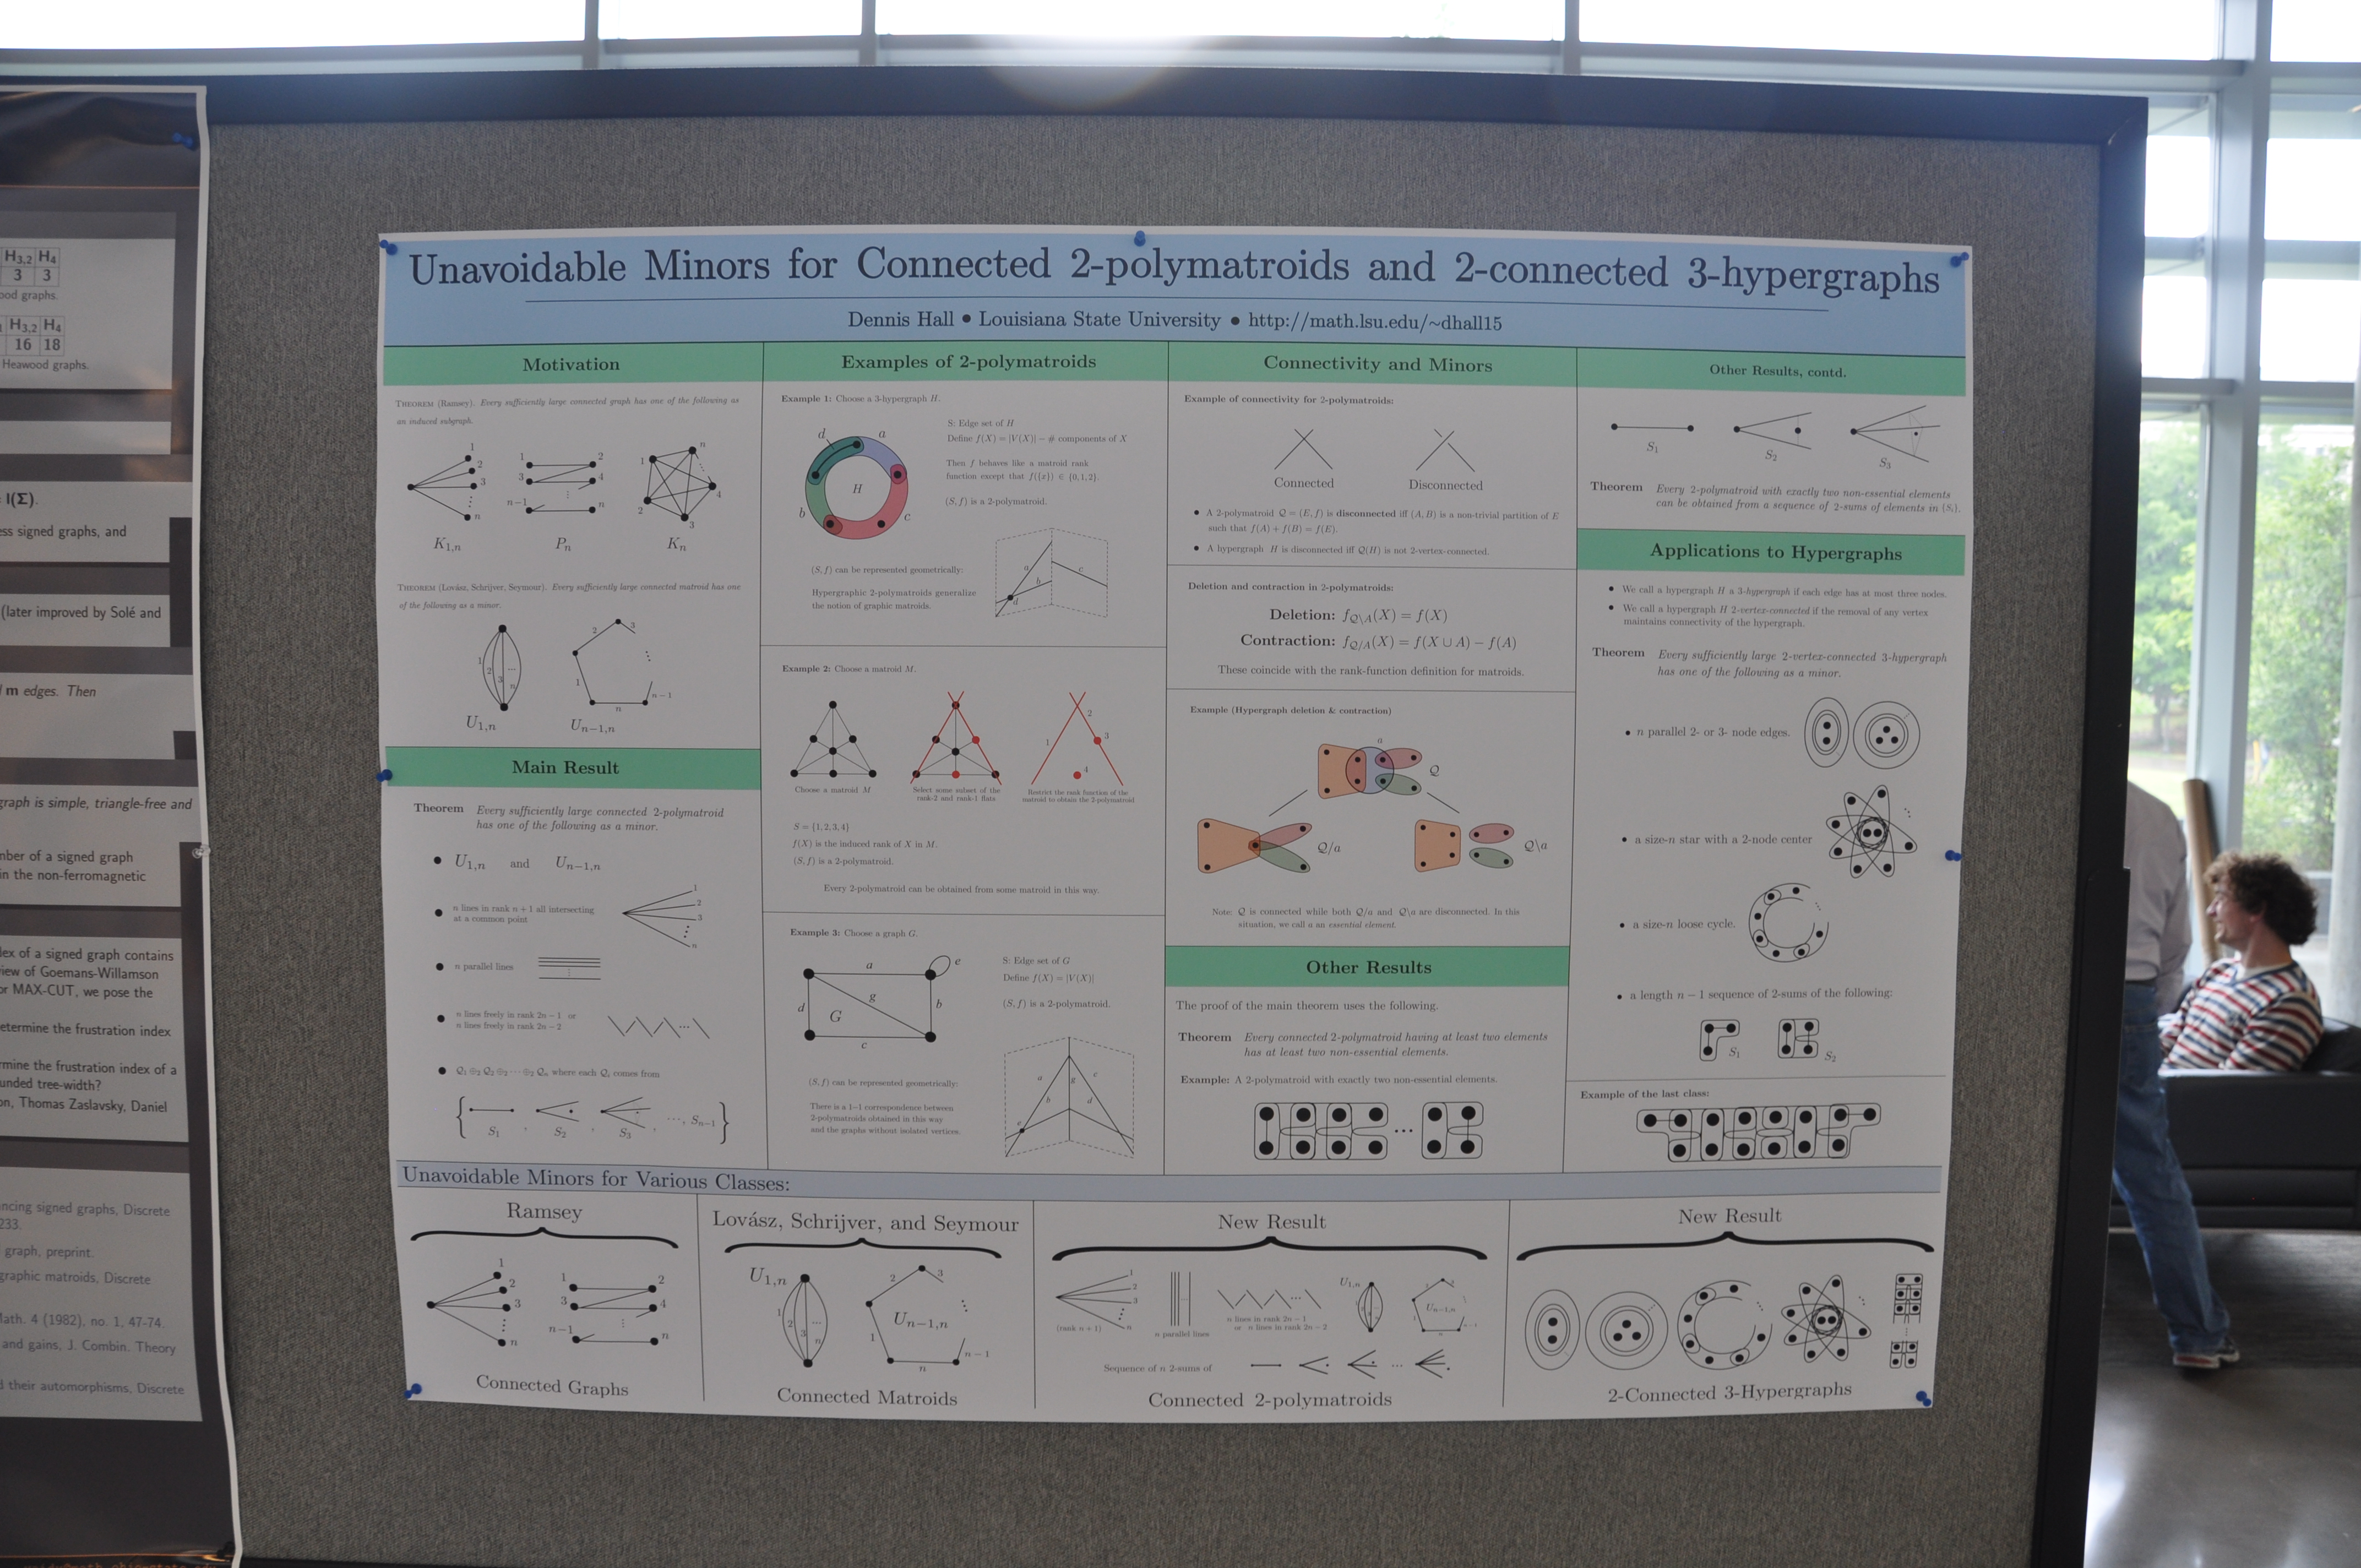 Poster presentations graph theory georgia tech dennis hall louisiana state university unavoidable minors for connected 2 polymatroids baditri Gallery